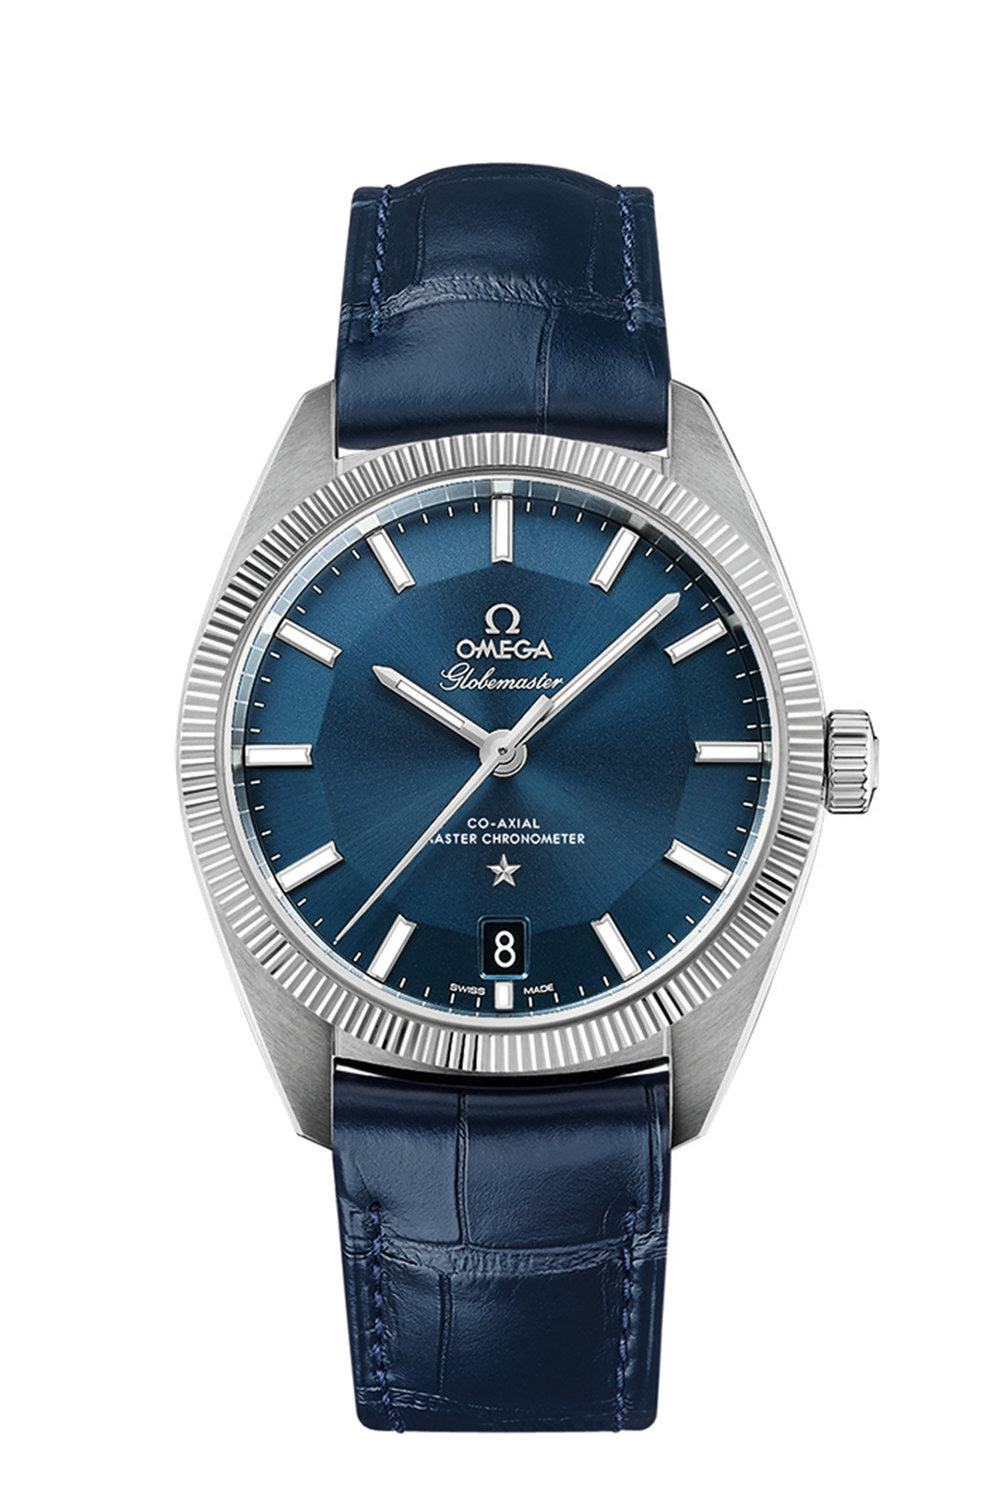 2.Globemaster Watch by OMEGA ‬$8,650,  omegawatches.com